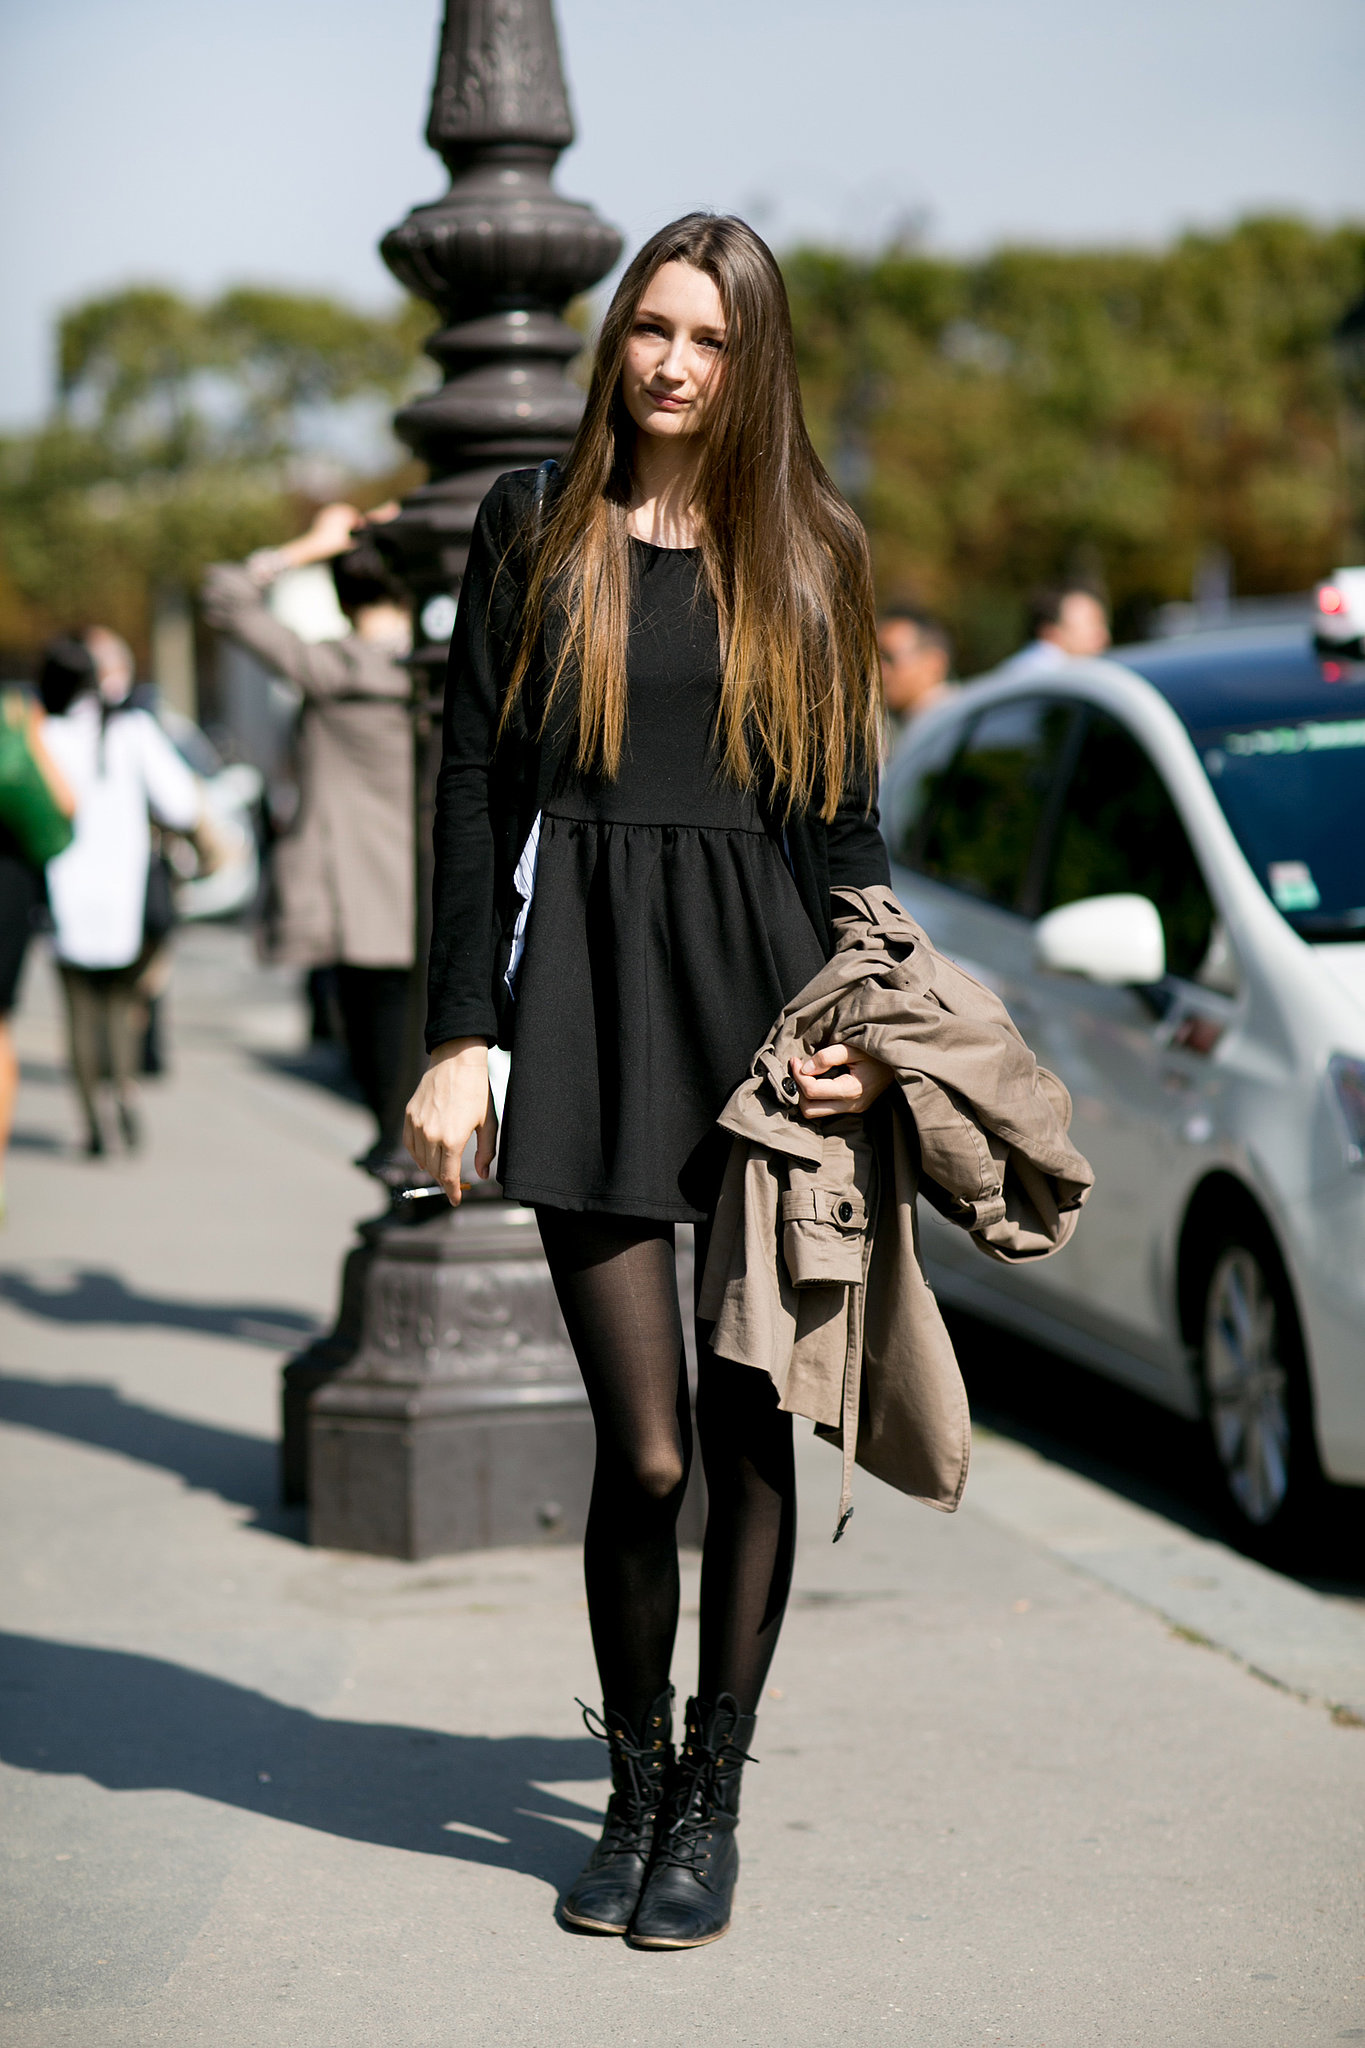 the black dress executed with black boots